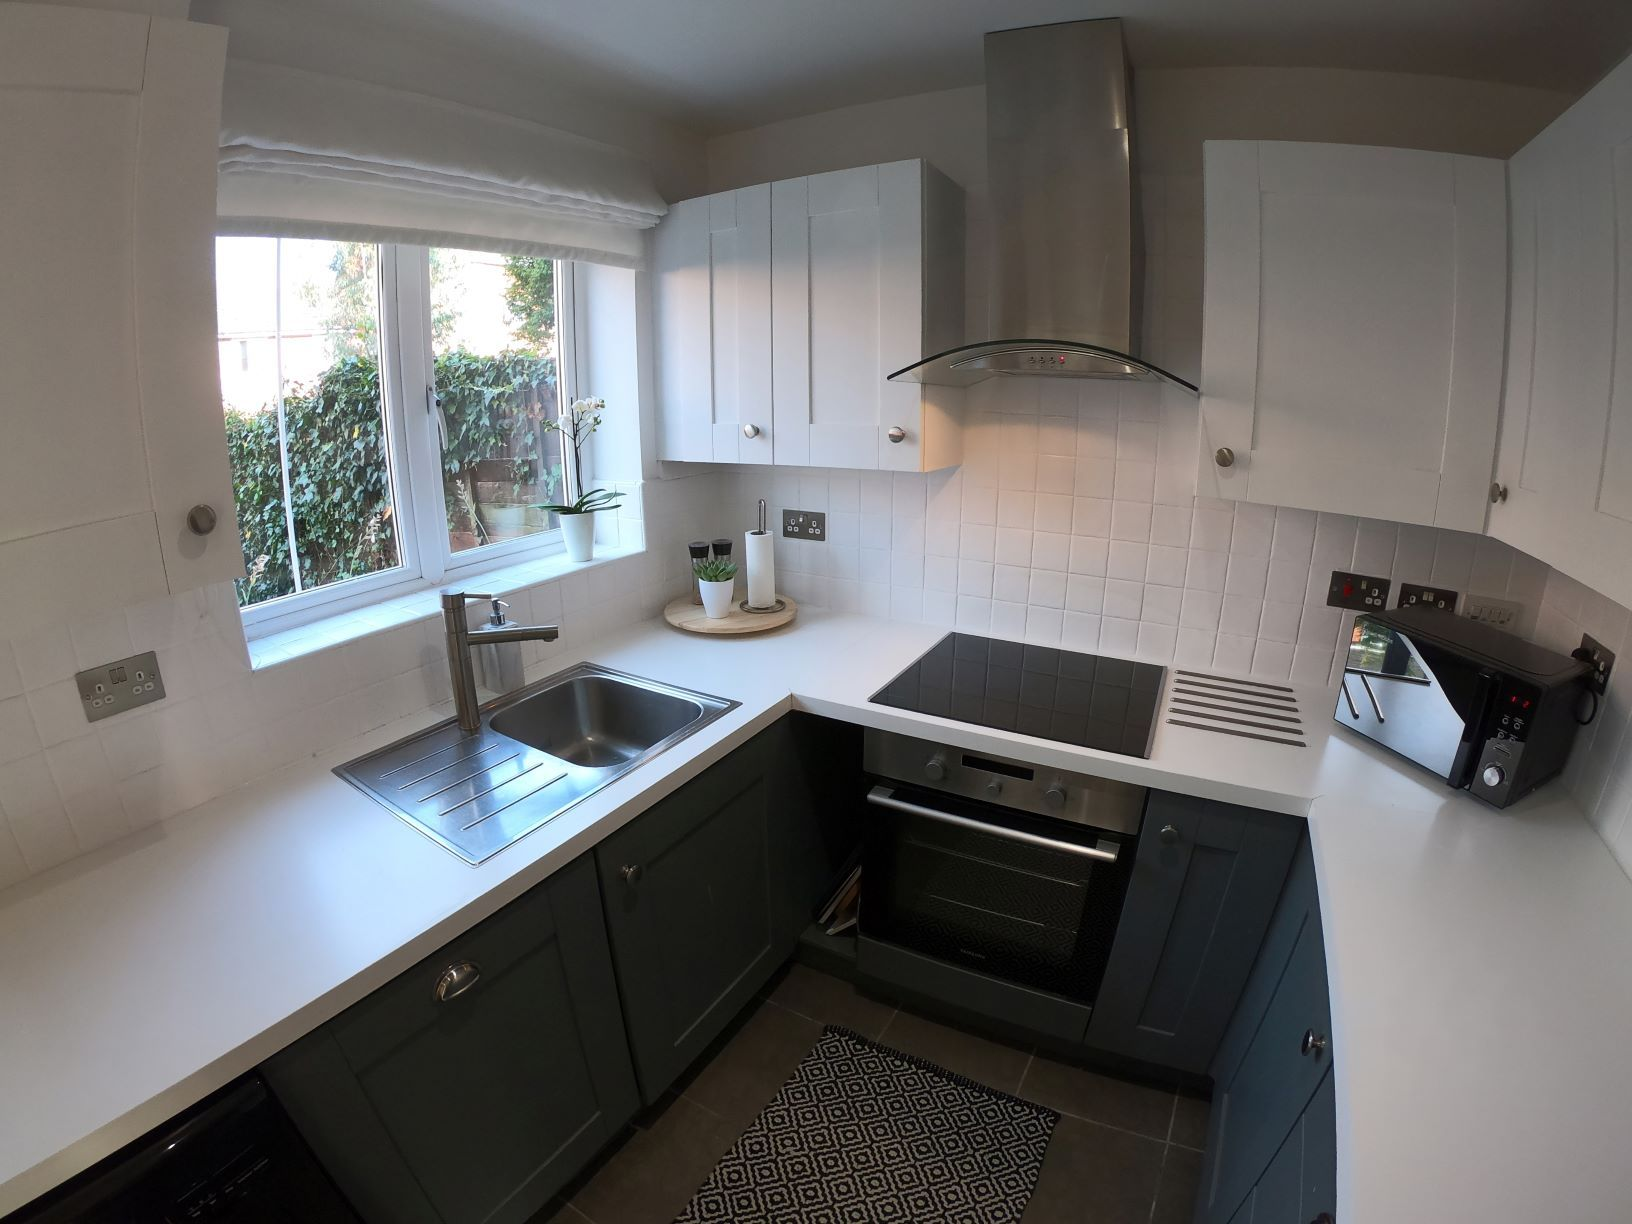 3 Bedroom Mews House For Sale - Photograph 10